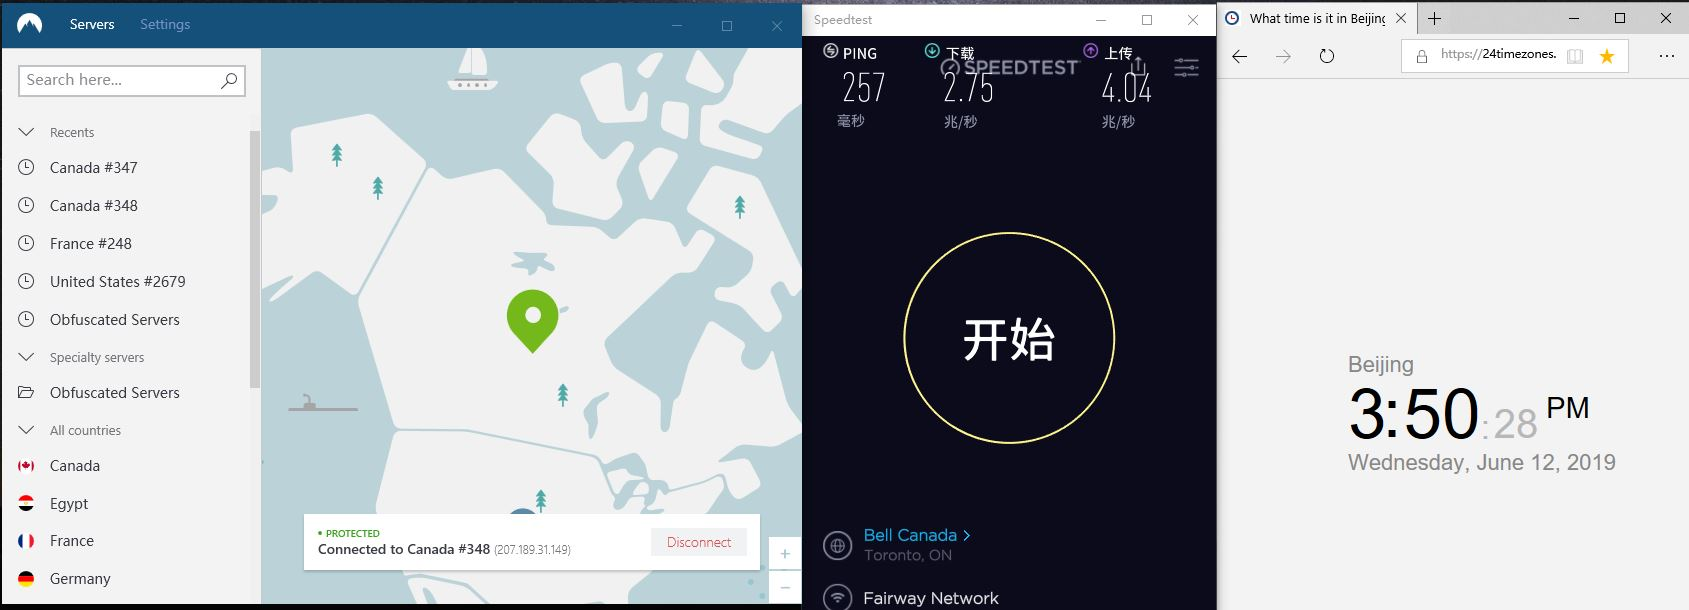 nordVPN-windows10-canada-348节点-speedtest-20190612